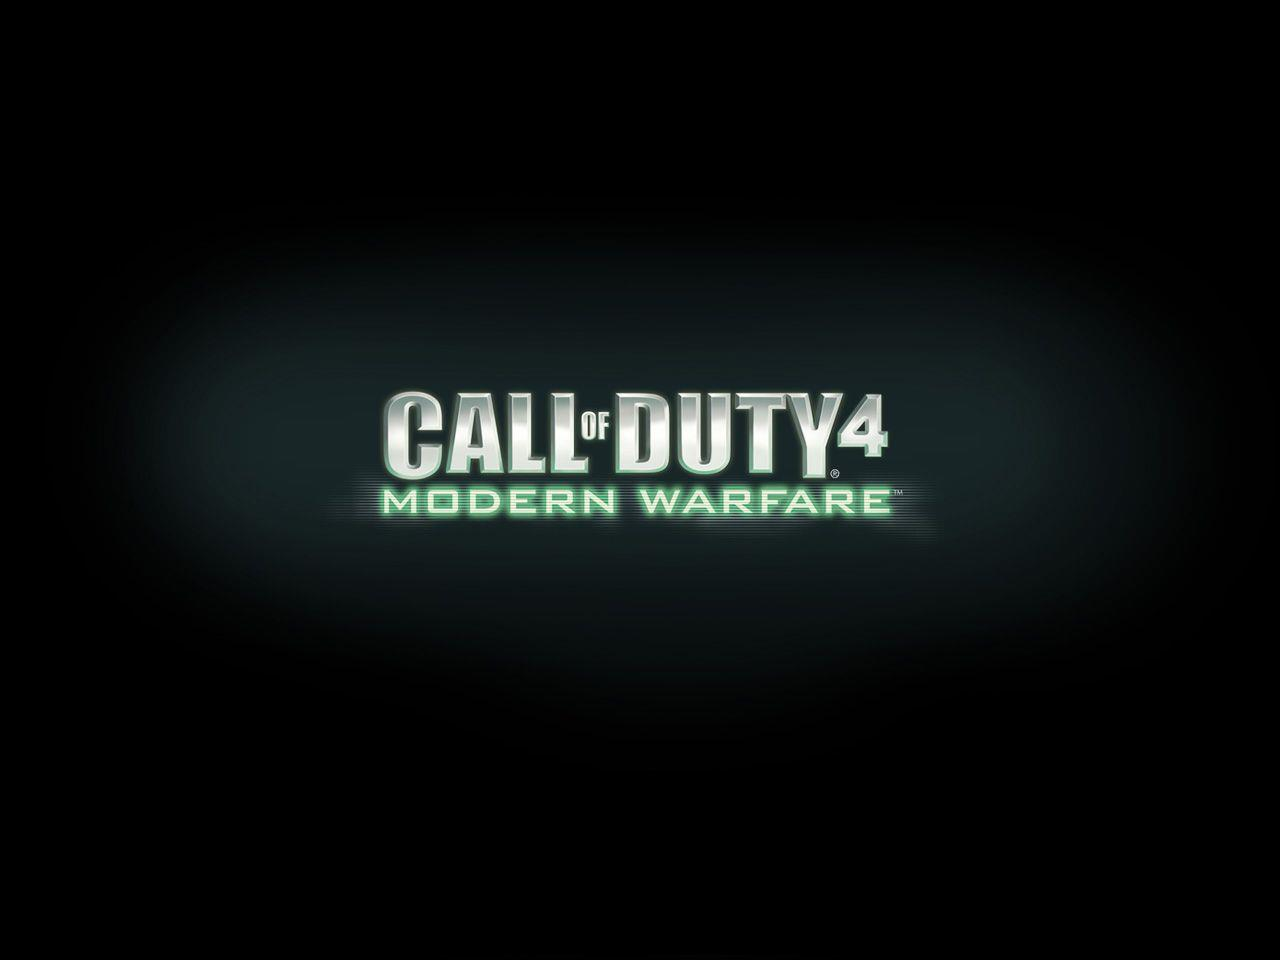 Call of Duty 4 - Modern Warfare Logo